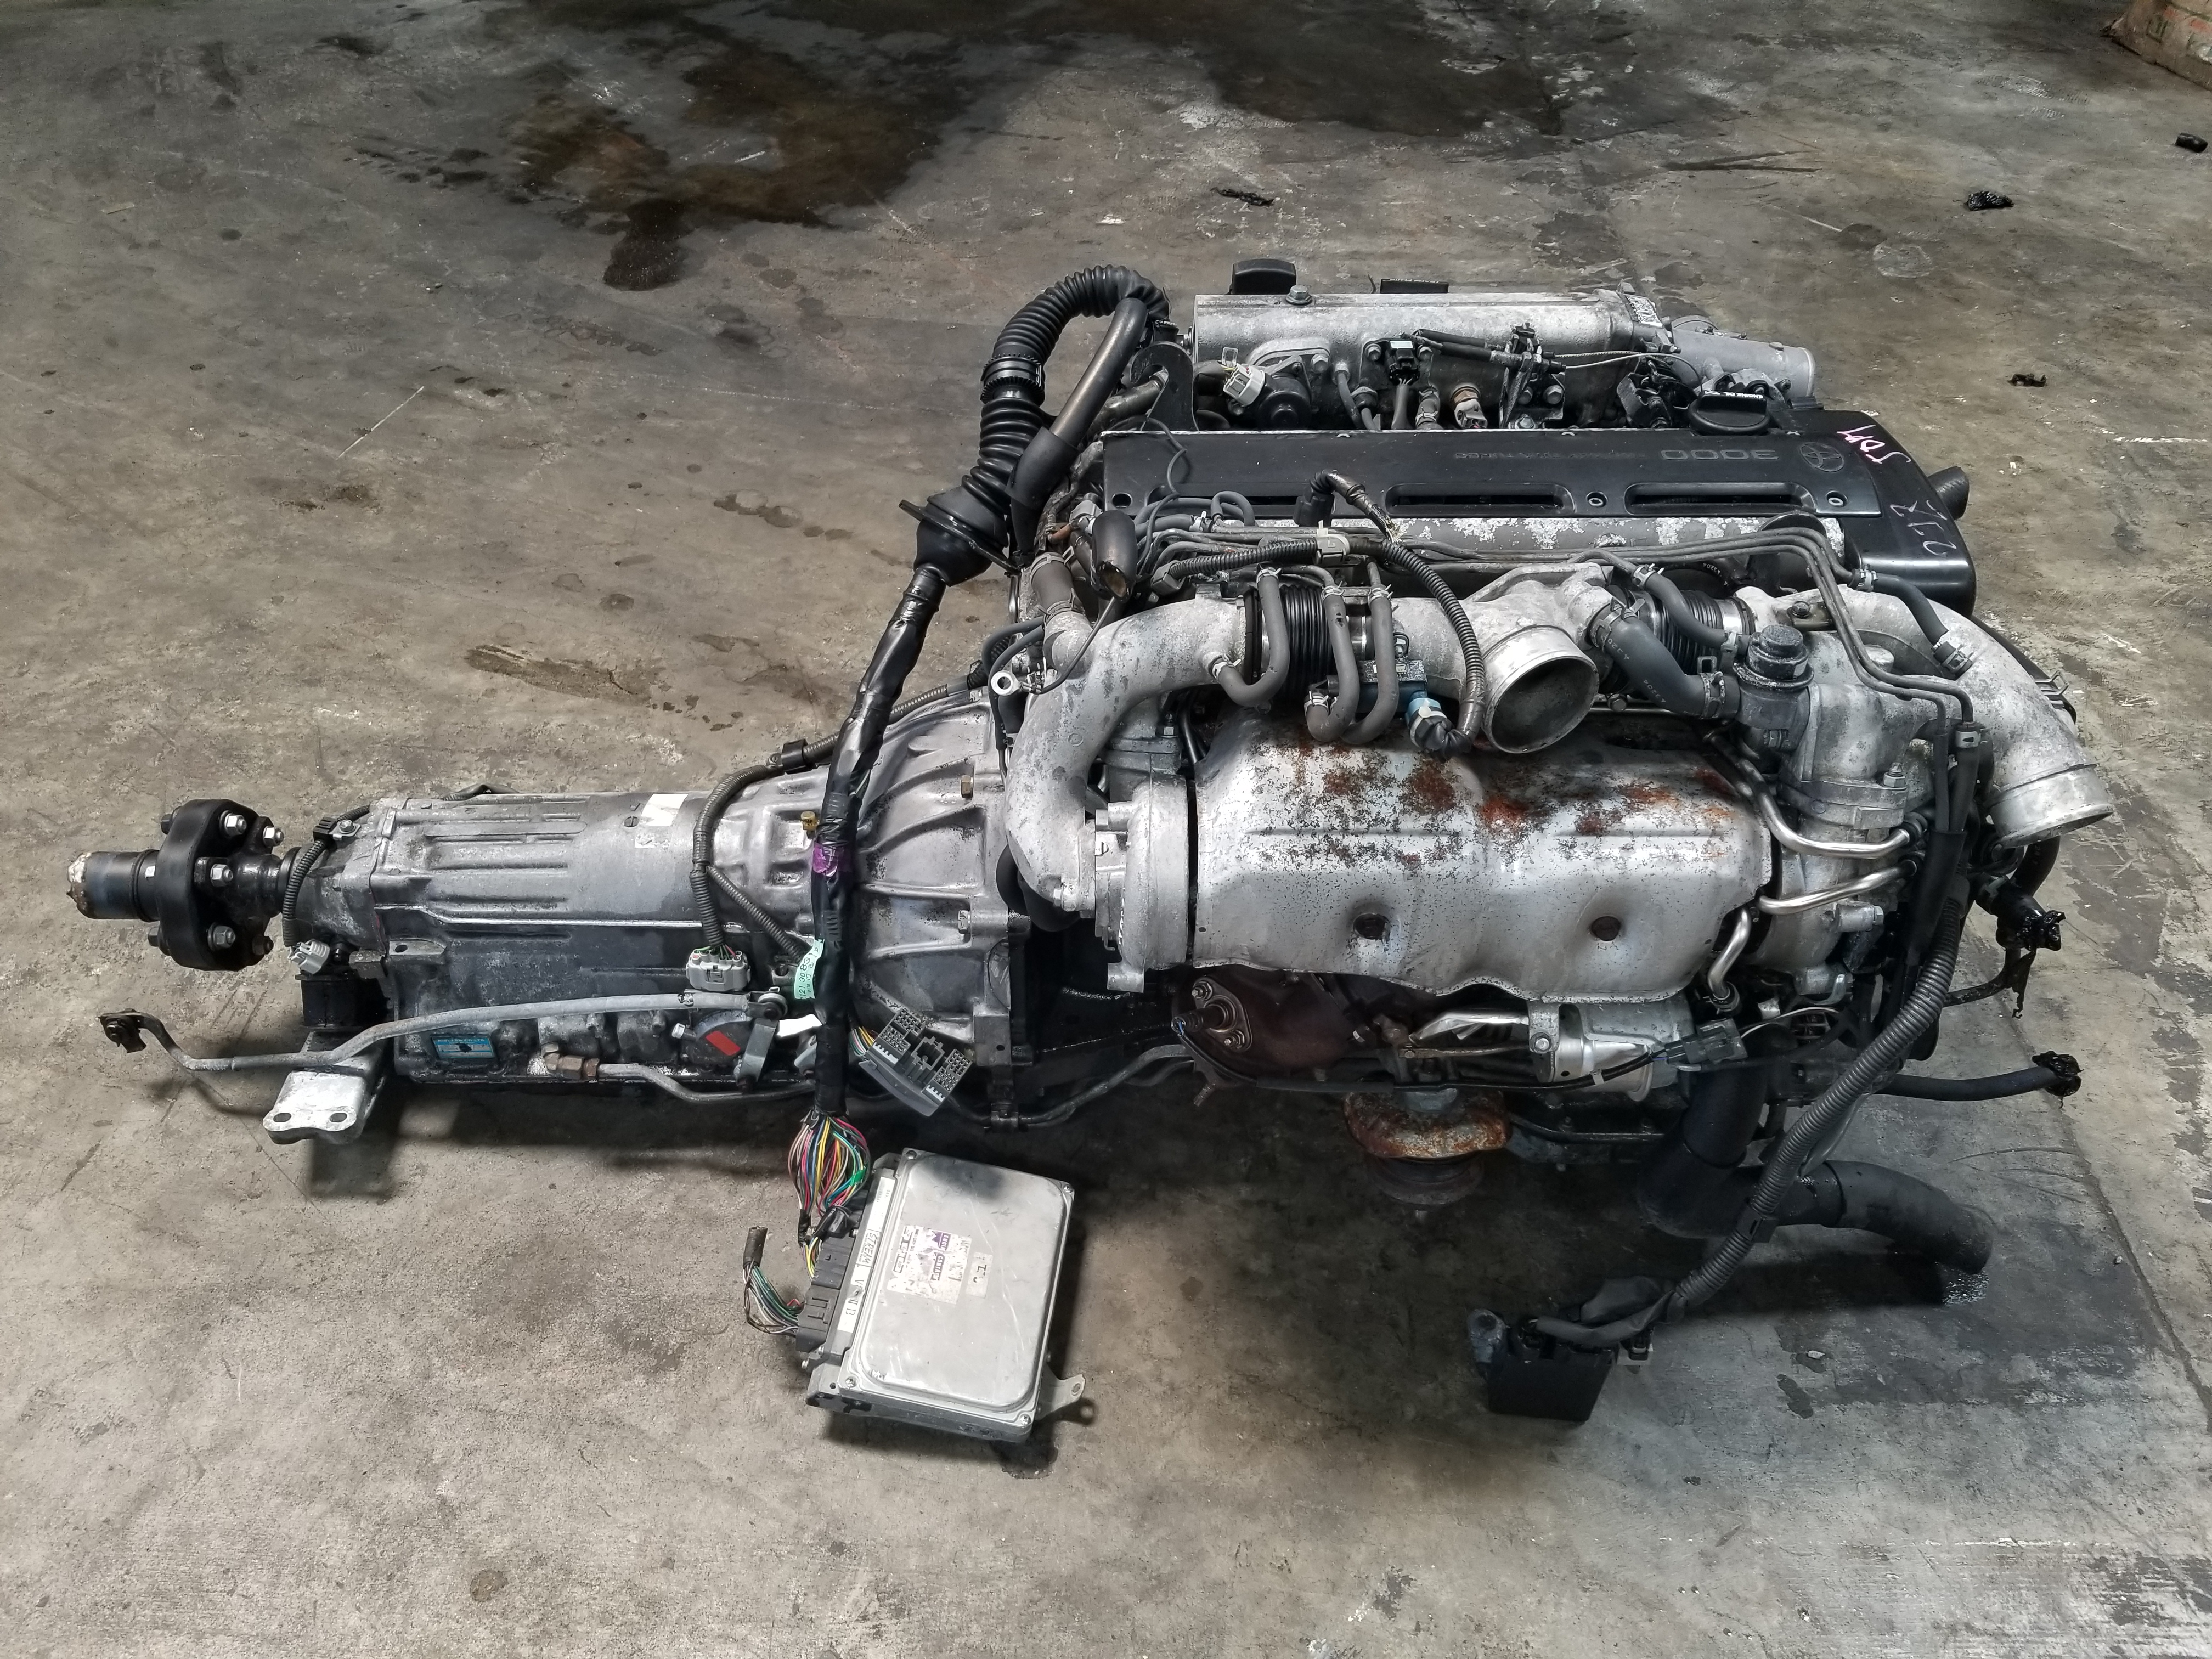 2JZGTE Non-VVTi Twin Turbo 3 0L Toyota 2JZ Engine with Automatic  Transmission Complete Swap (Hard to Get)